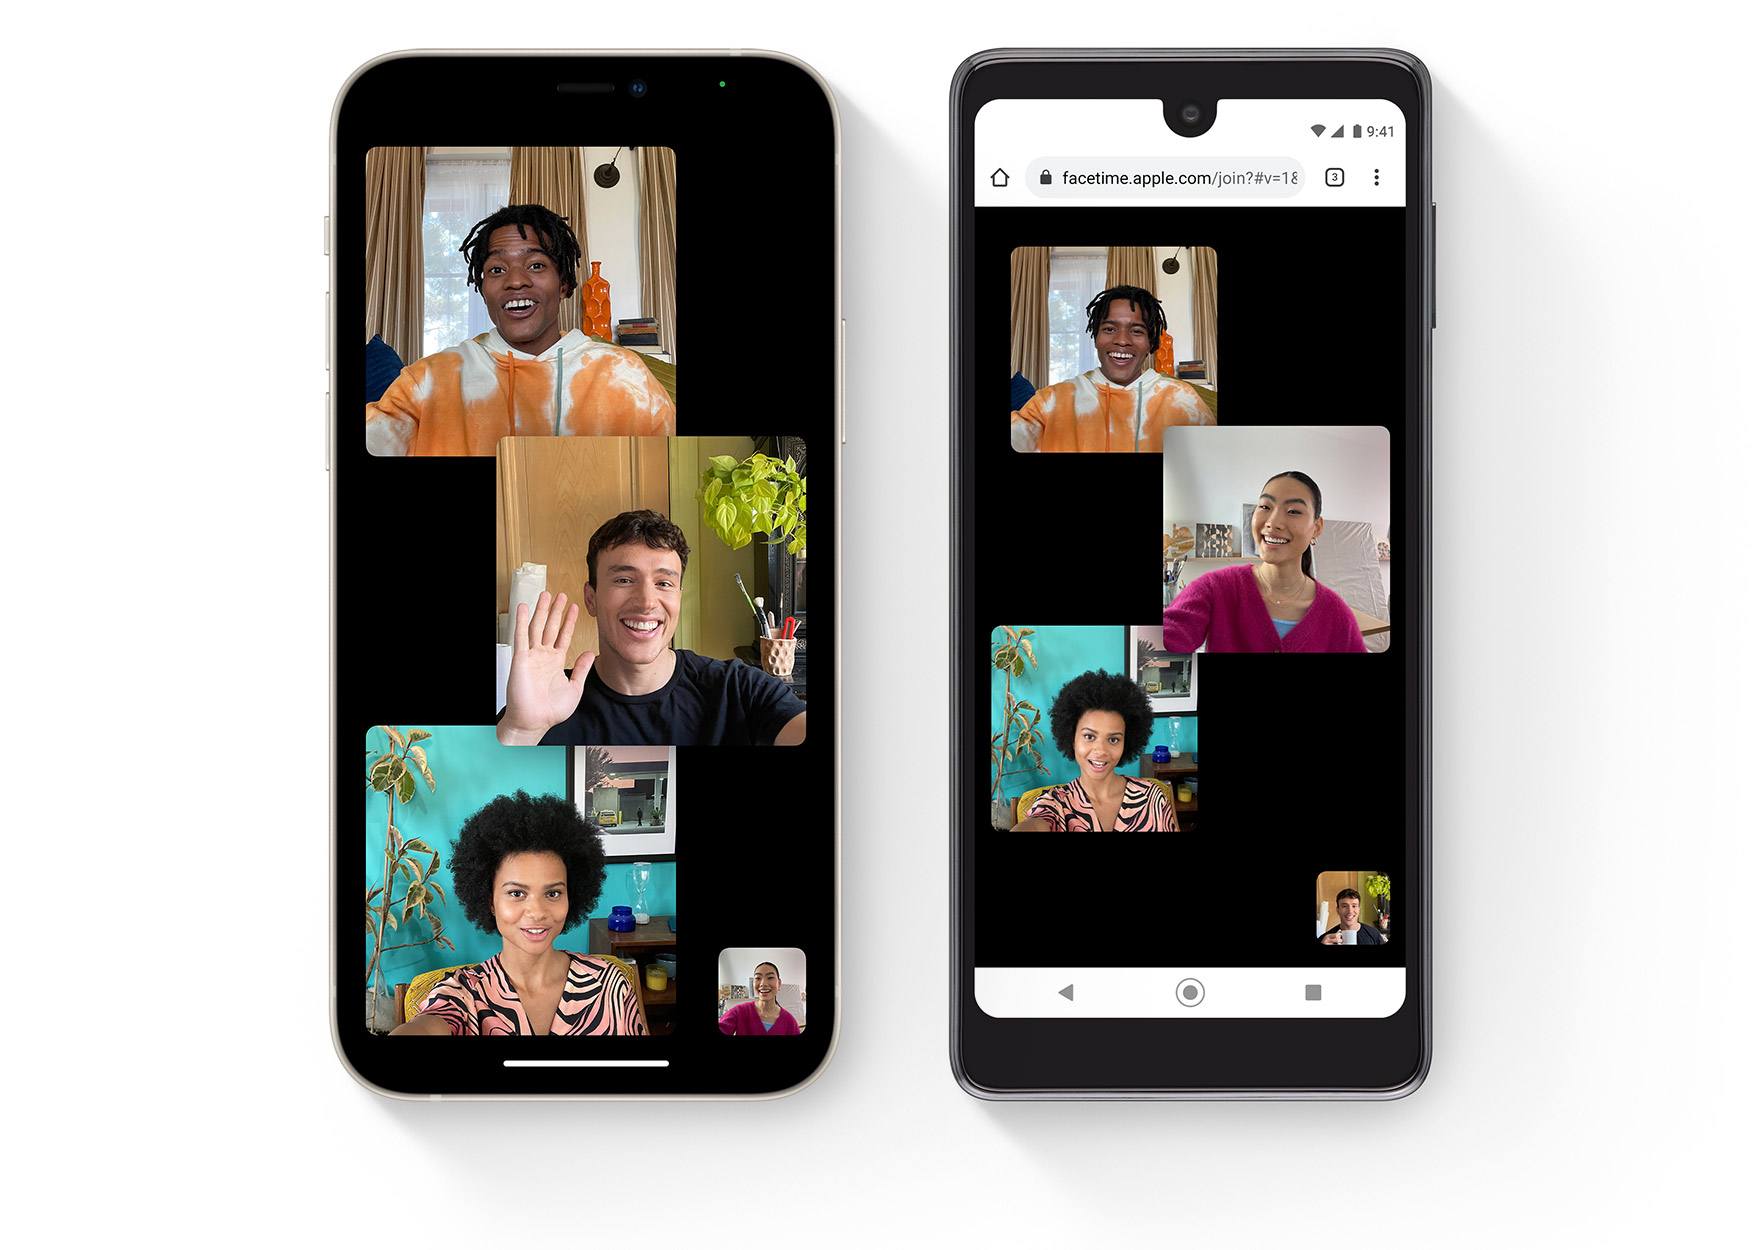 Apple website image showing iOS 15 FaceTime on iPhone and Android